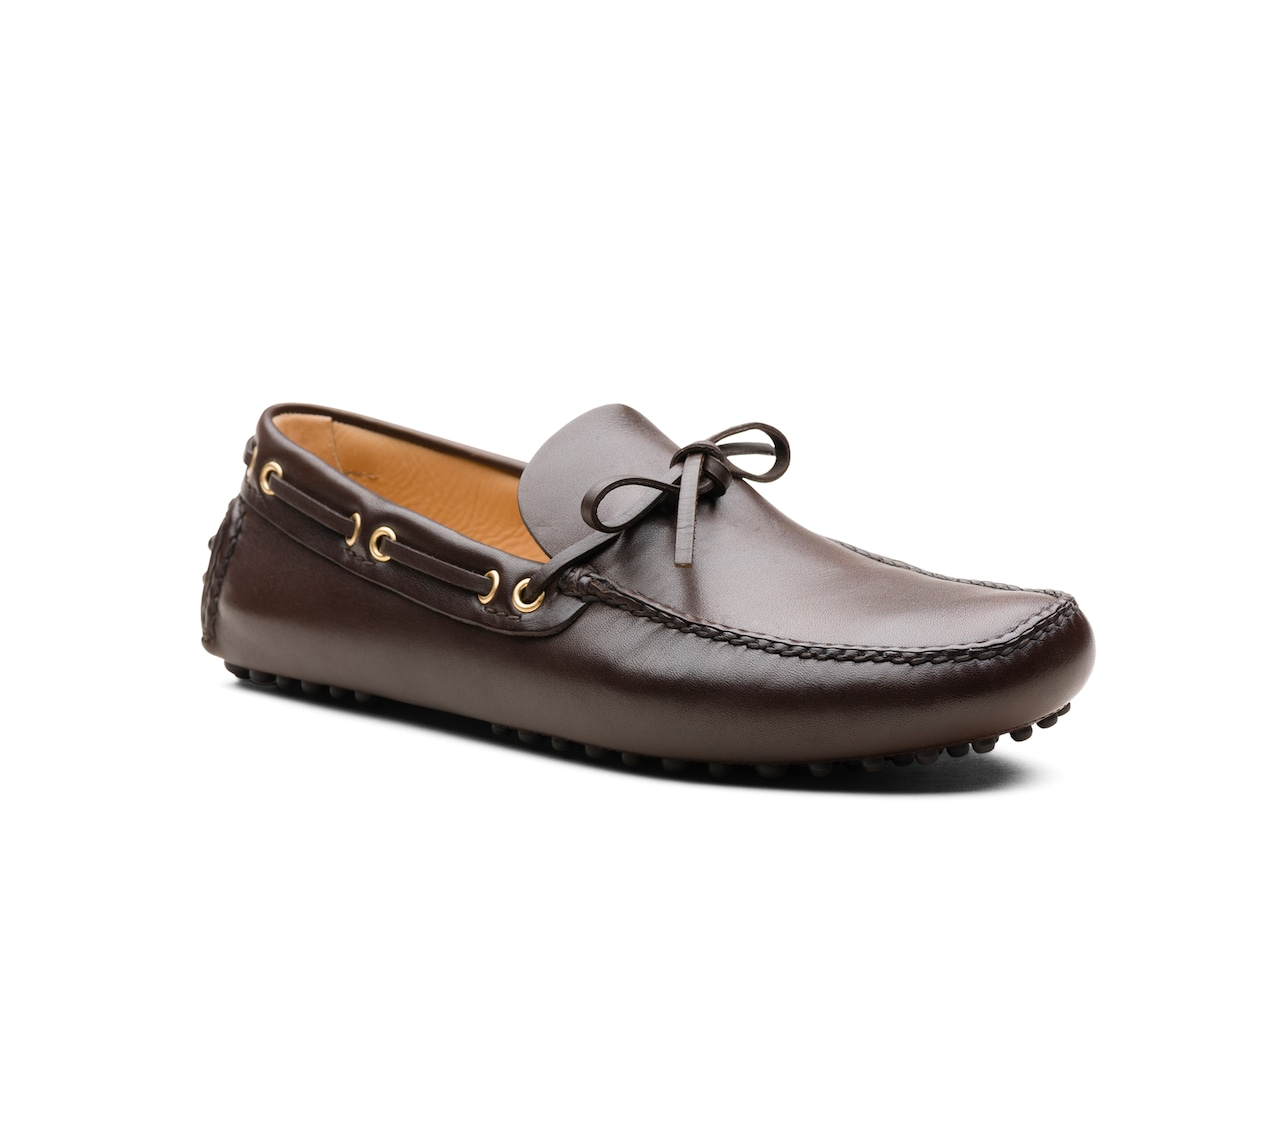 PLAIN CALF DRIVING SHOES BROWN